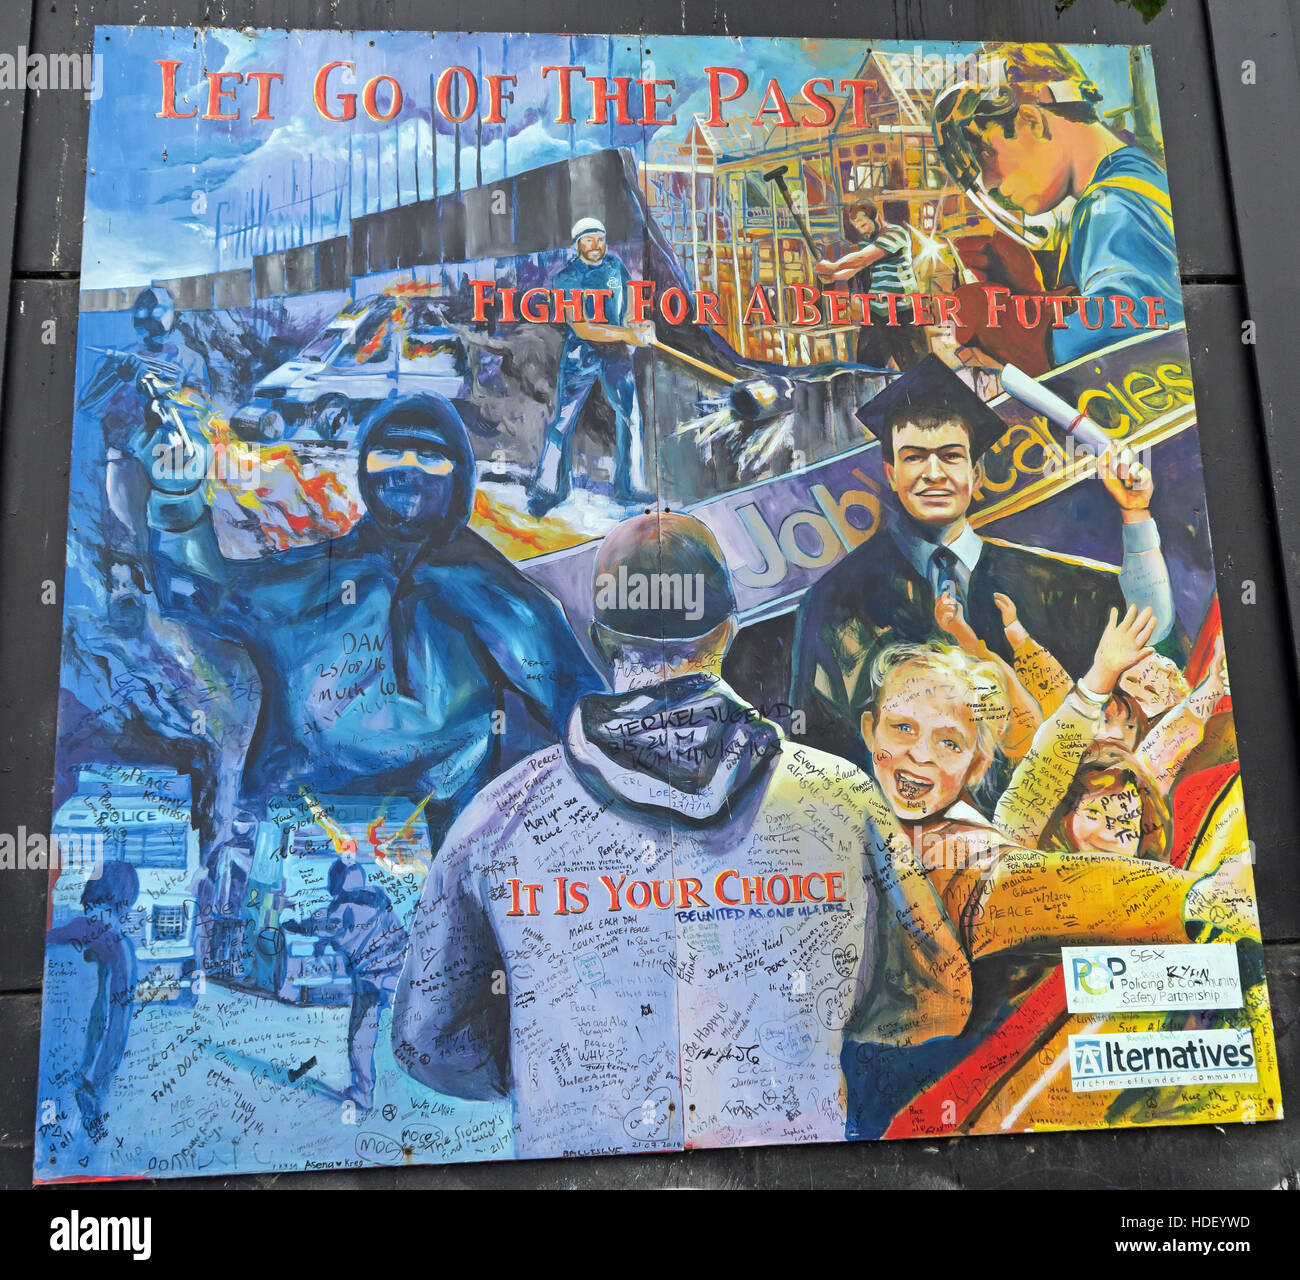 Let go of the past - International Peace Wall,Cupar Way,West Belfast  , Northern Ireland, UK Stock Photo